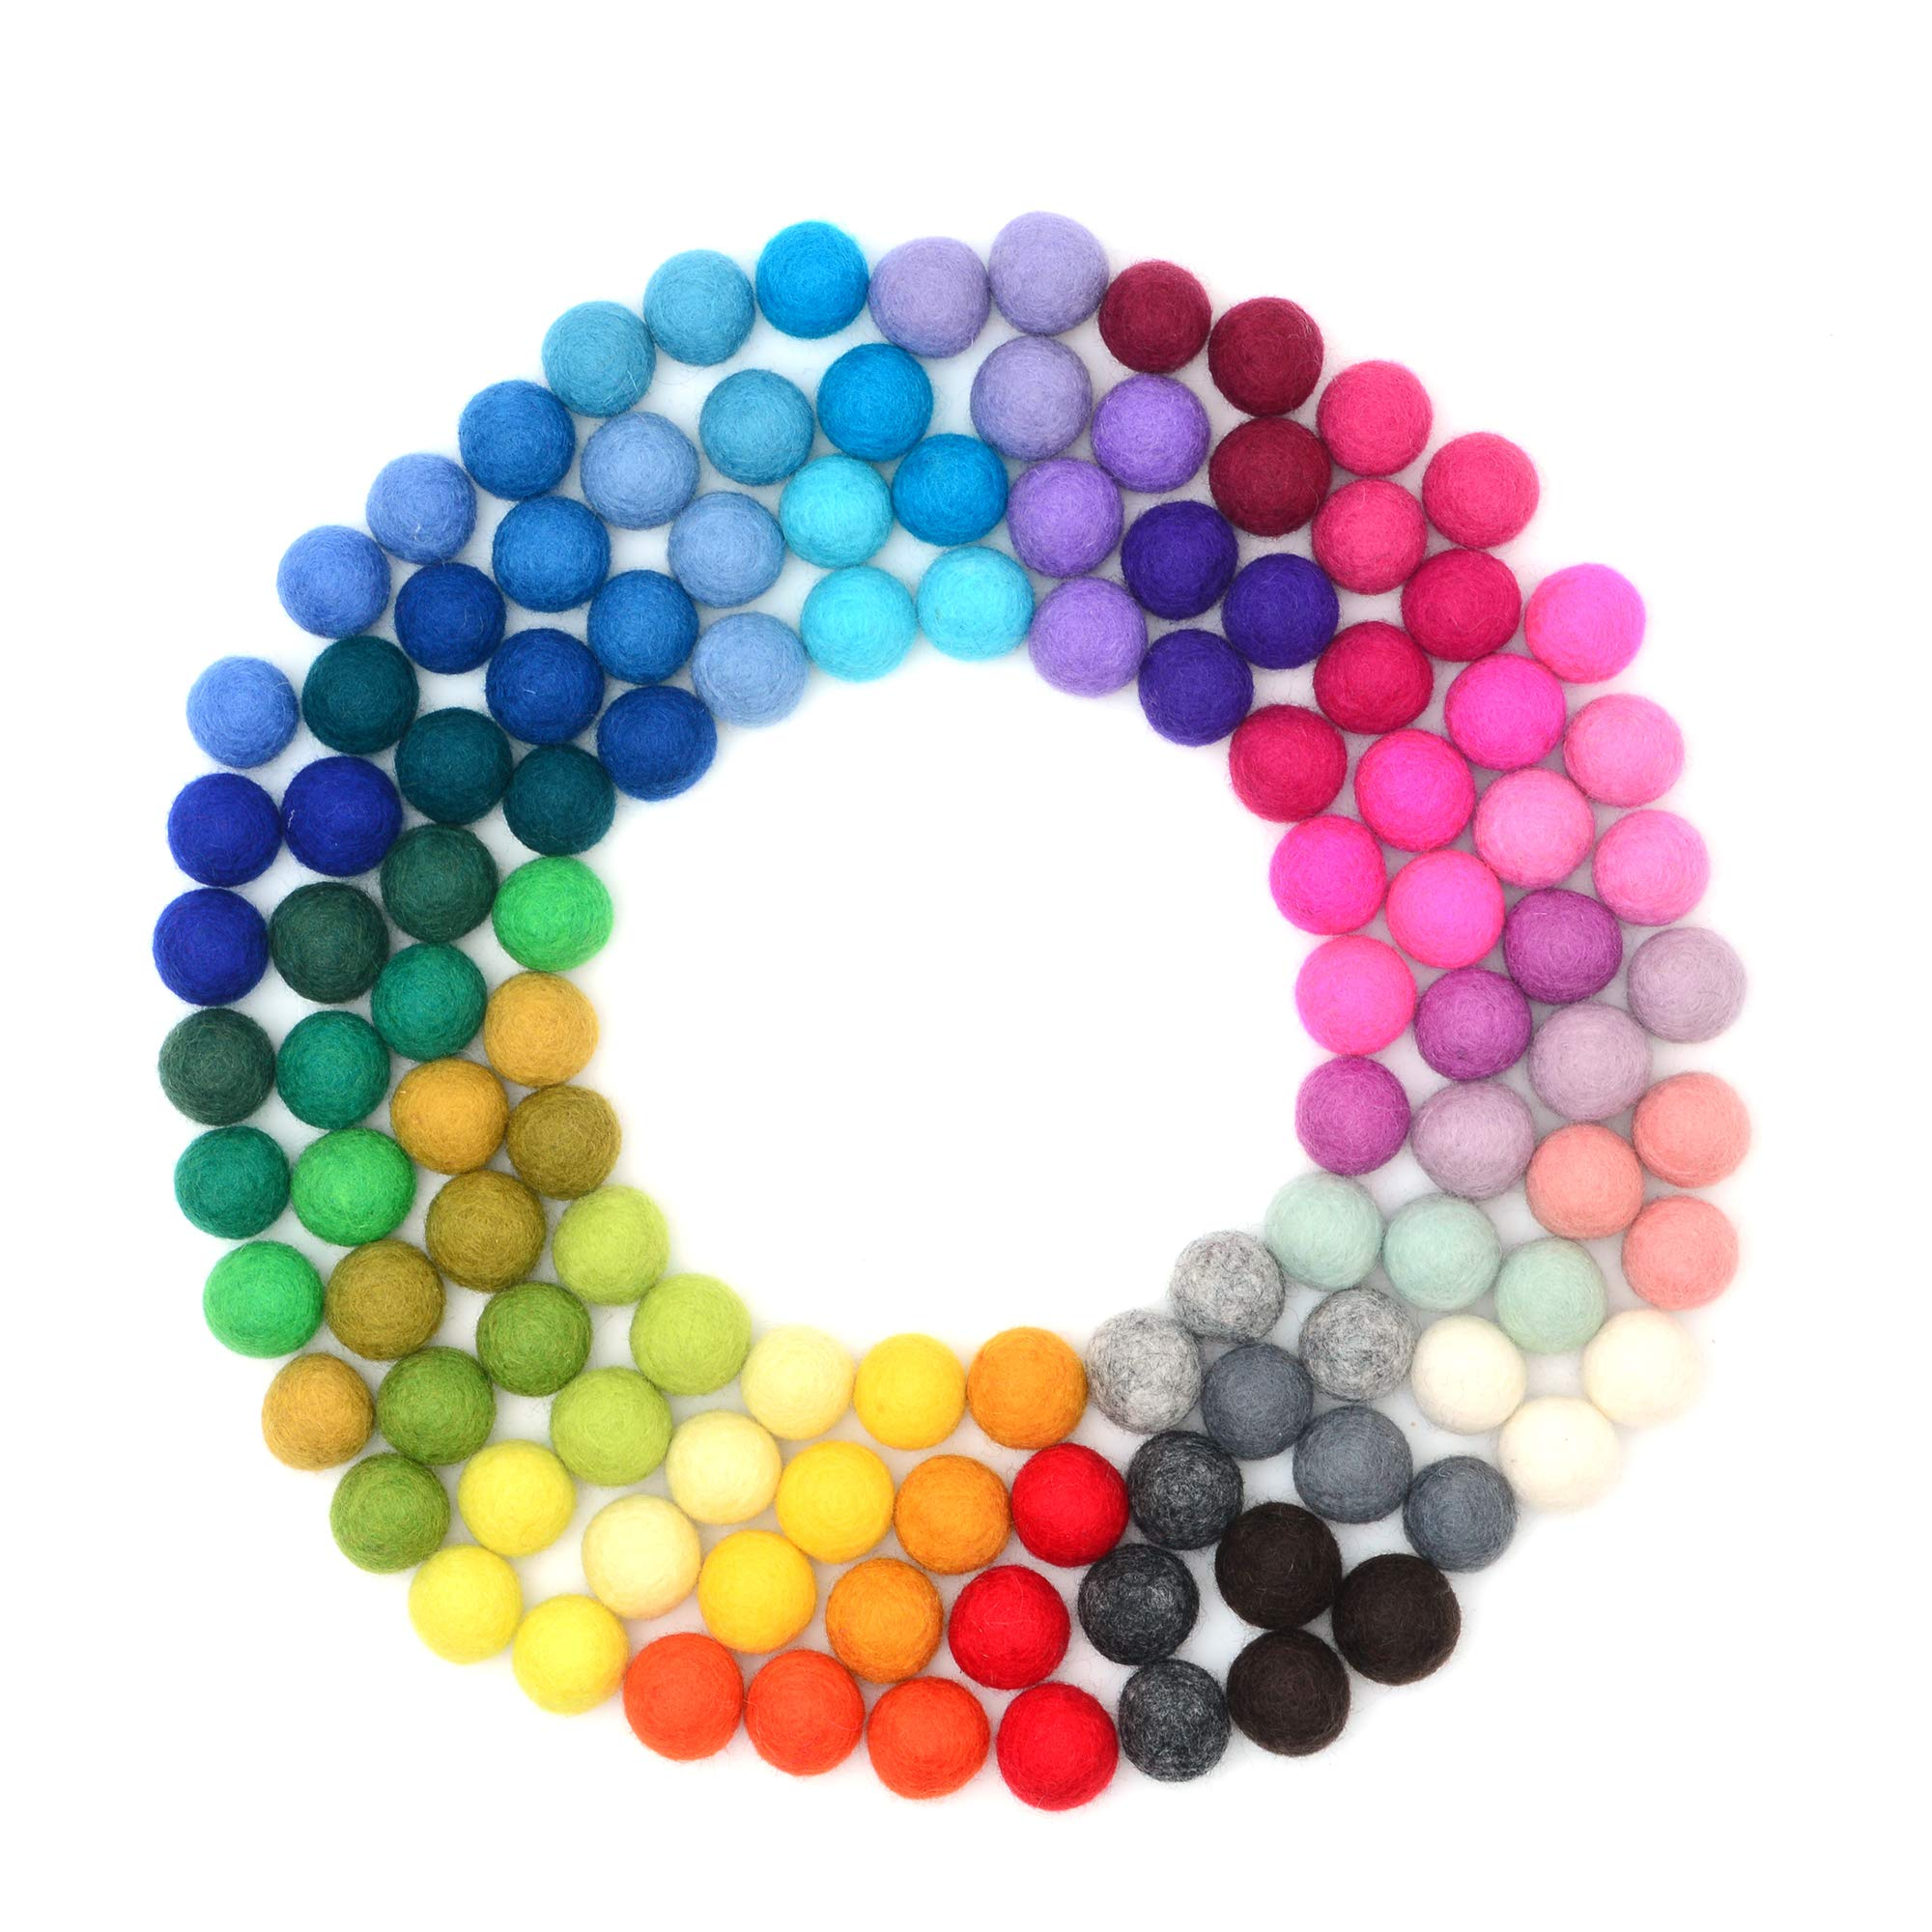 Glaciart Felt Pom Poms, Wool Balls (120 Pieces) Handmade Felted 40 Color (Red, Pink, Blue, Orange, Yellow, Gray, Black, White, Pastel & More) 2 cm - 0.8 Inch, Bulk Small Puff for Felting & Garland